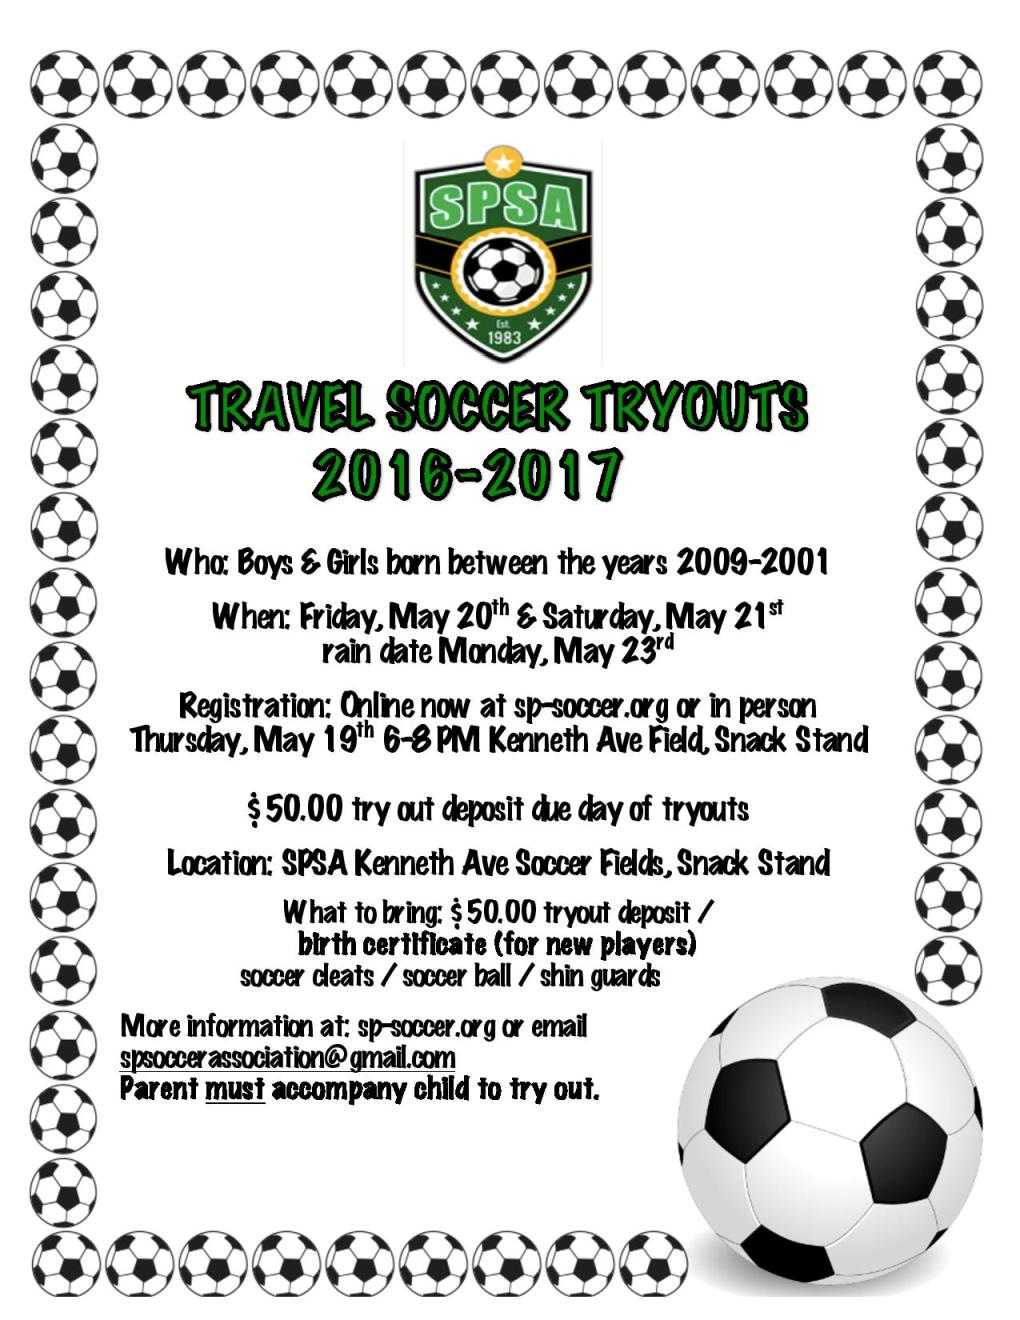 9ef35d51de5900f57ae8_soccer_try_out_flyer_final4-28-page-001.jpg